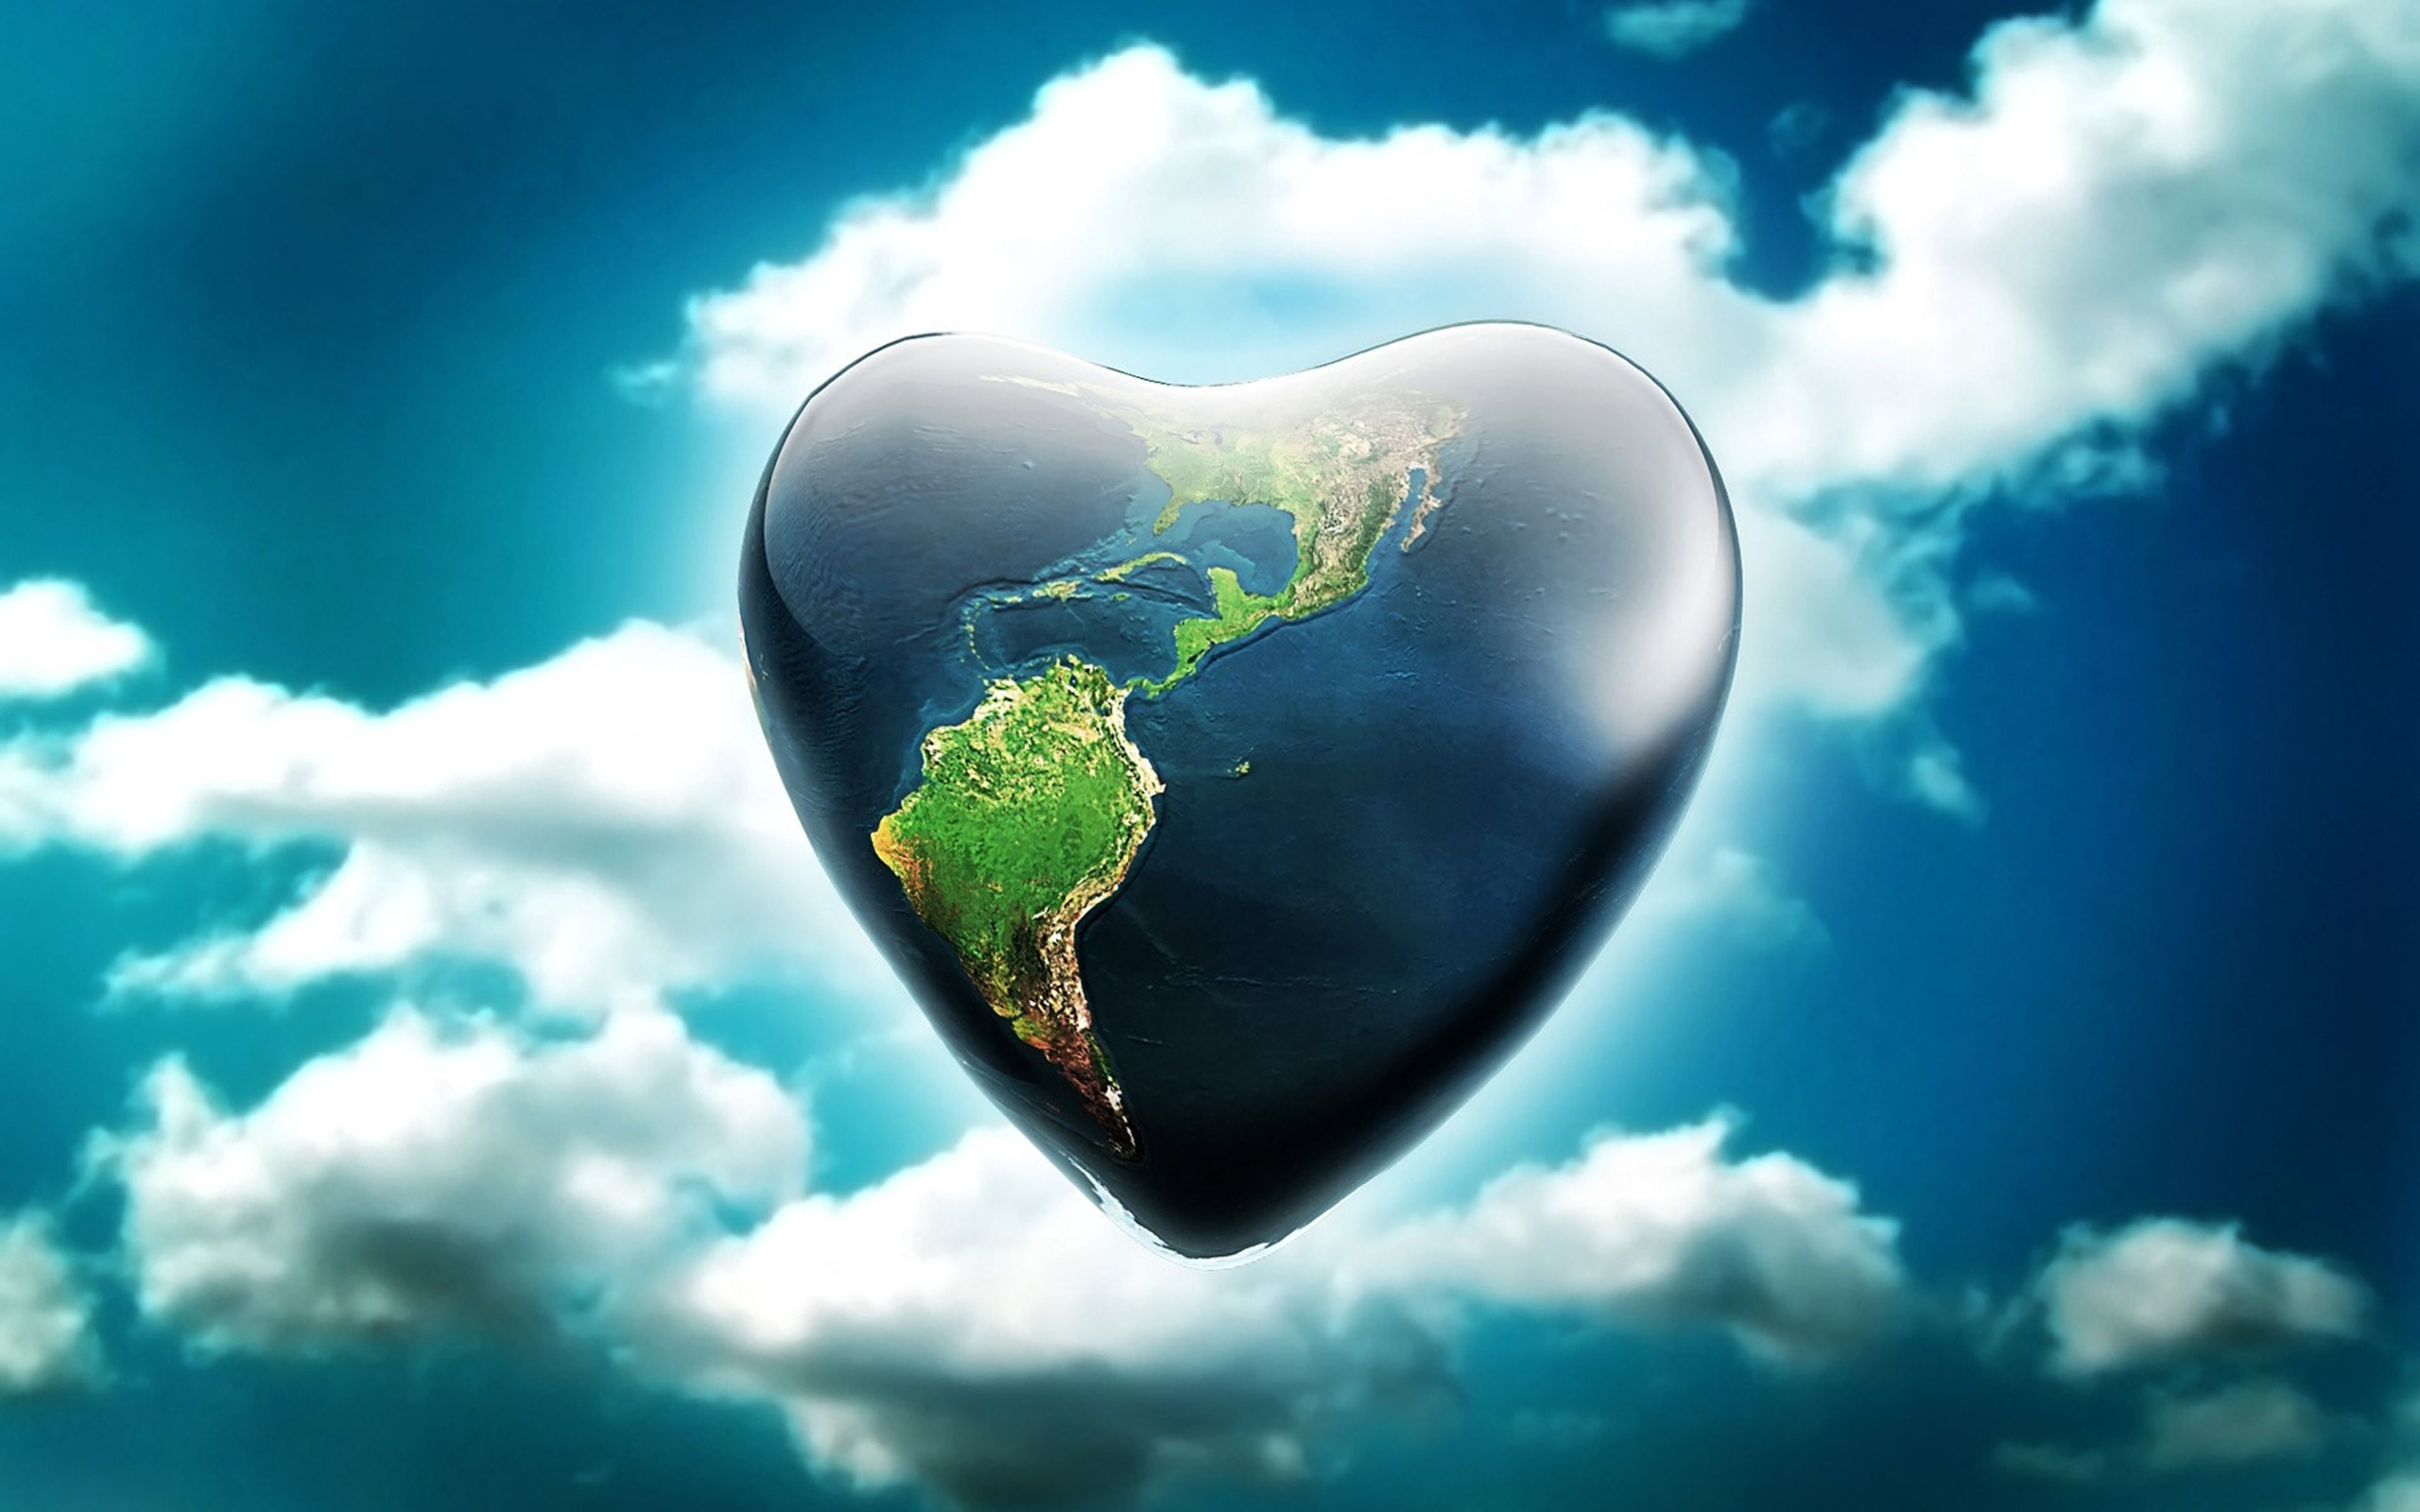 Peaceful Quotes Iphone Wallpaper Heart Shaped Earth Artistic Wallpaper 12560x1600